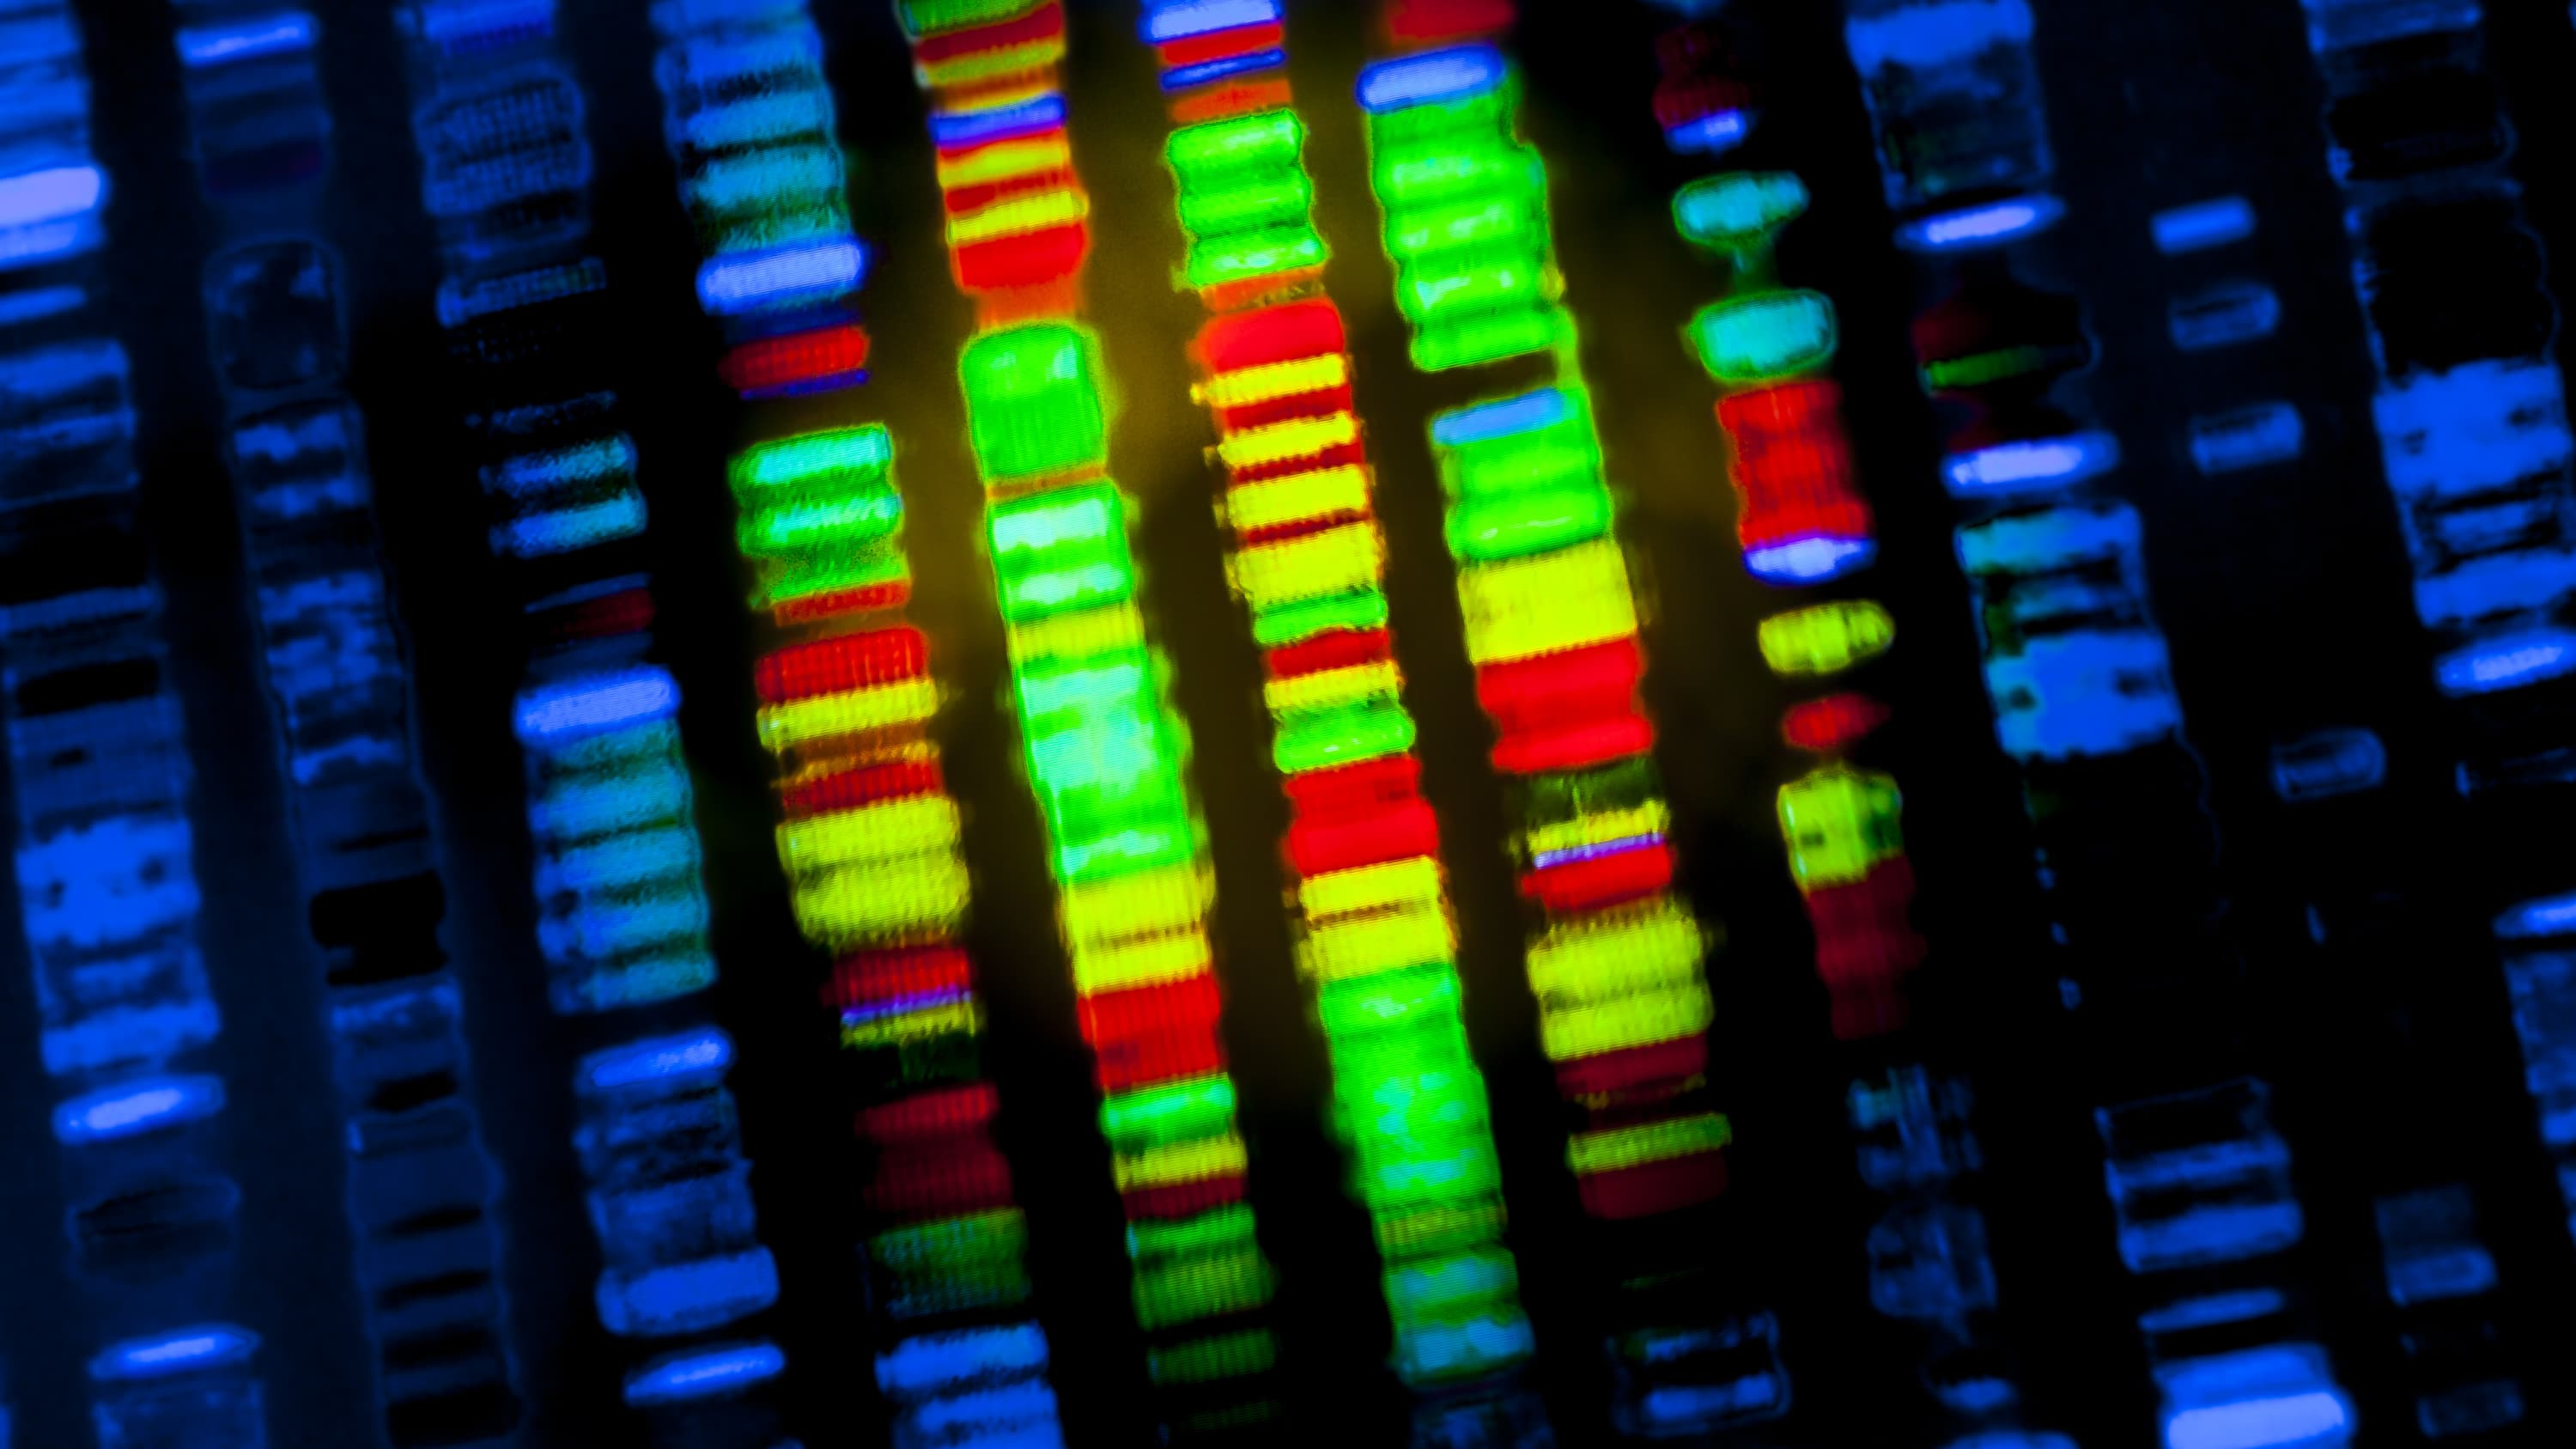 Columns of multiple colorful DNA show up on a dark background